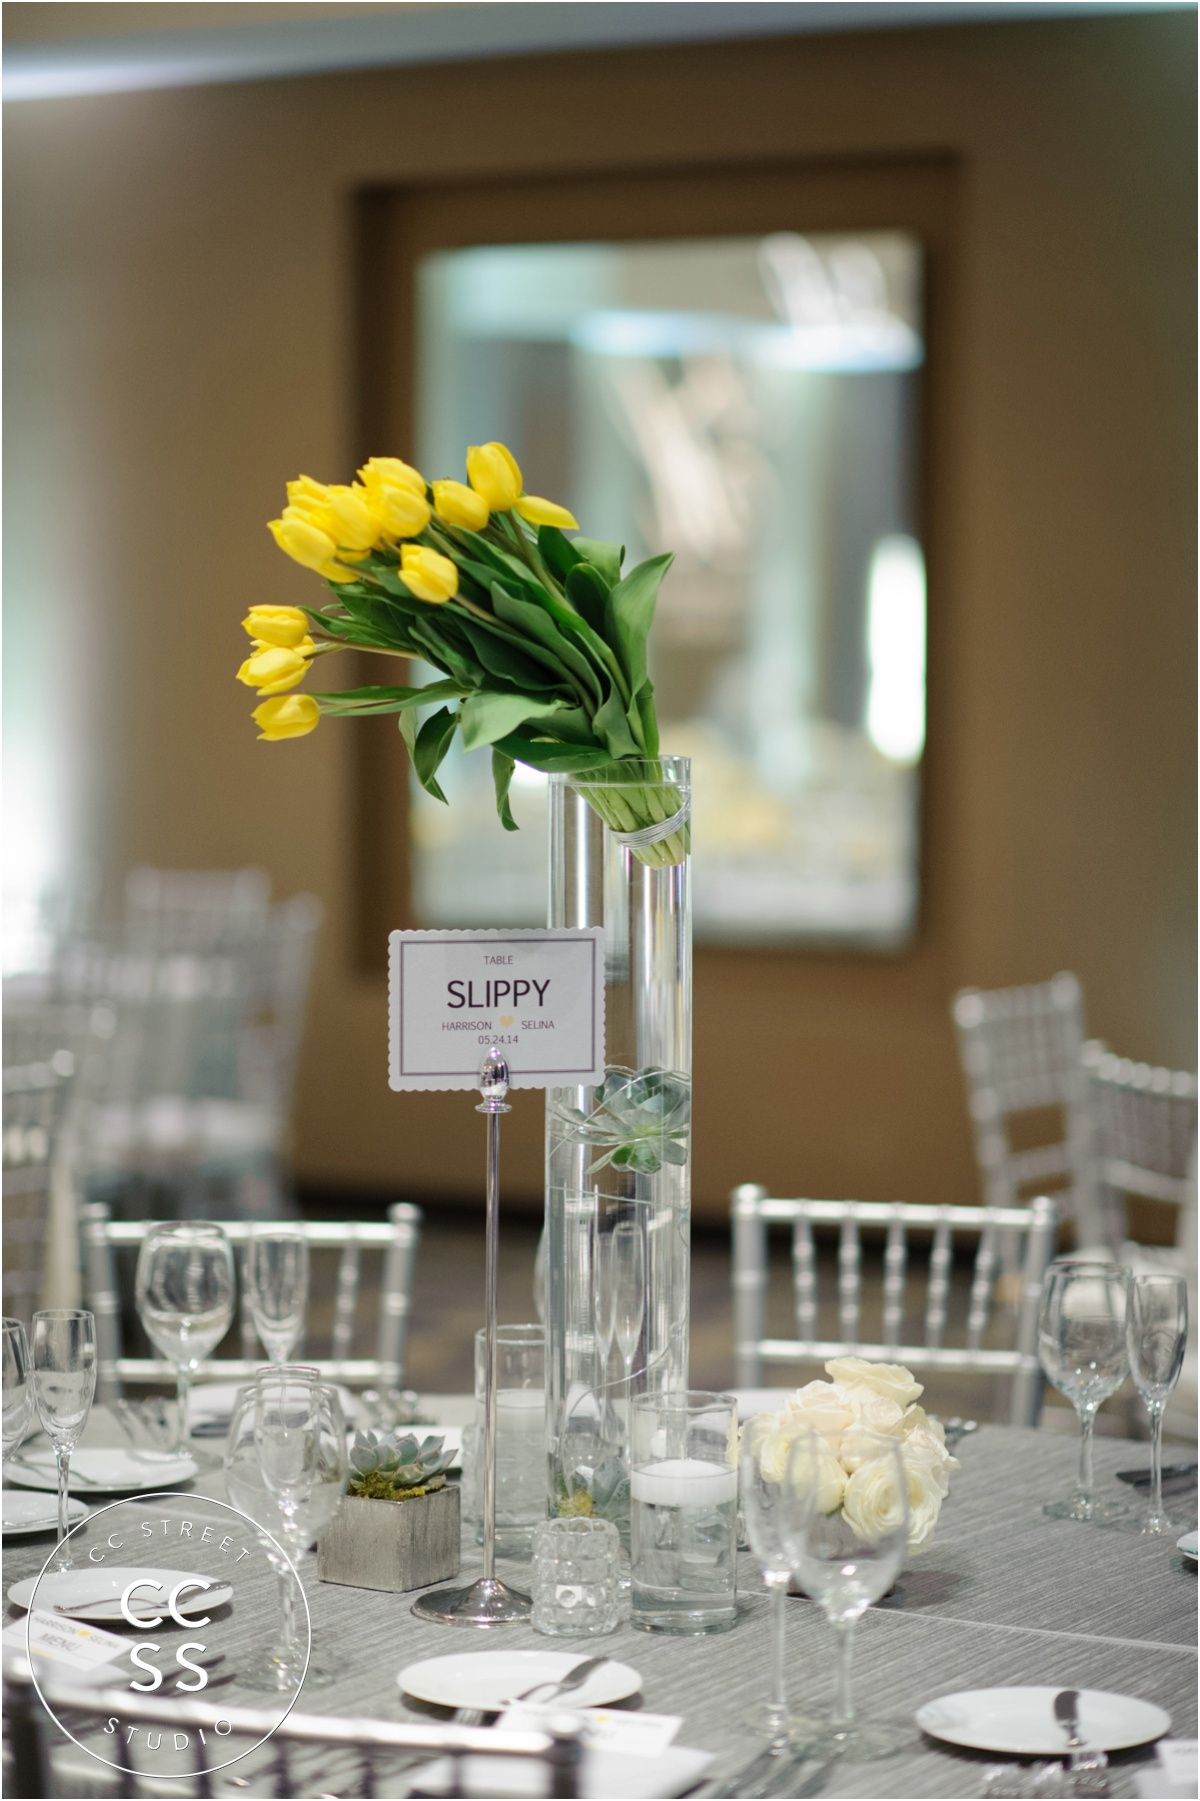 Wedding decorations yellow and gray  yellow wedding centerpieces  yellow tulips  gray wedding reception